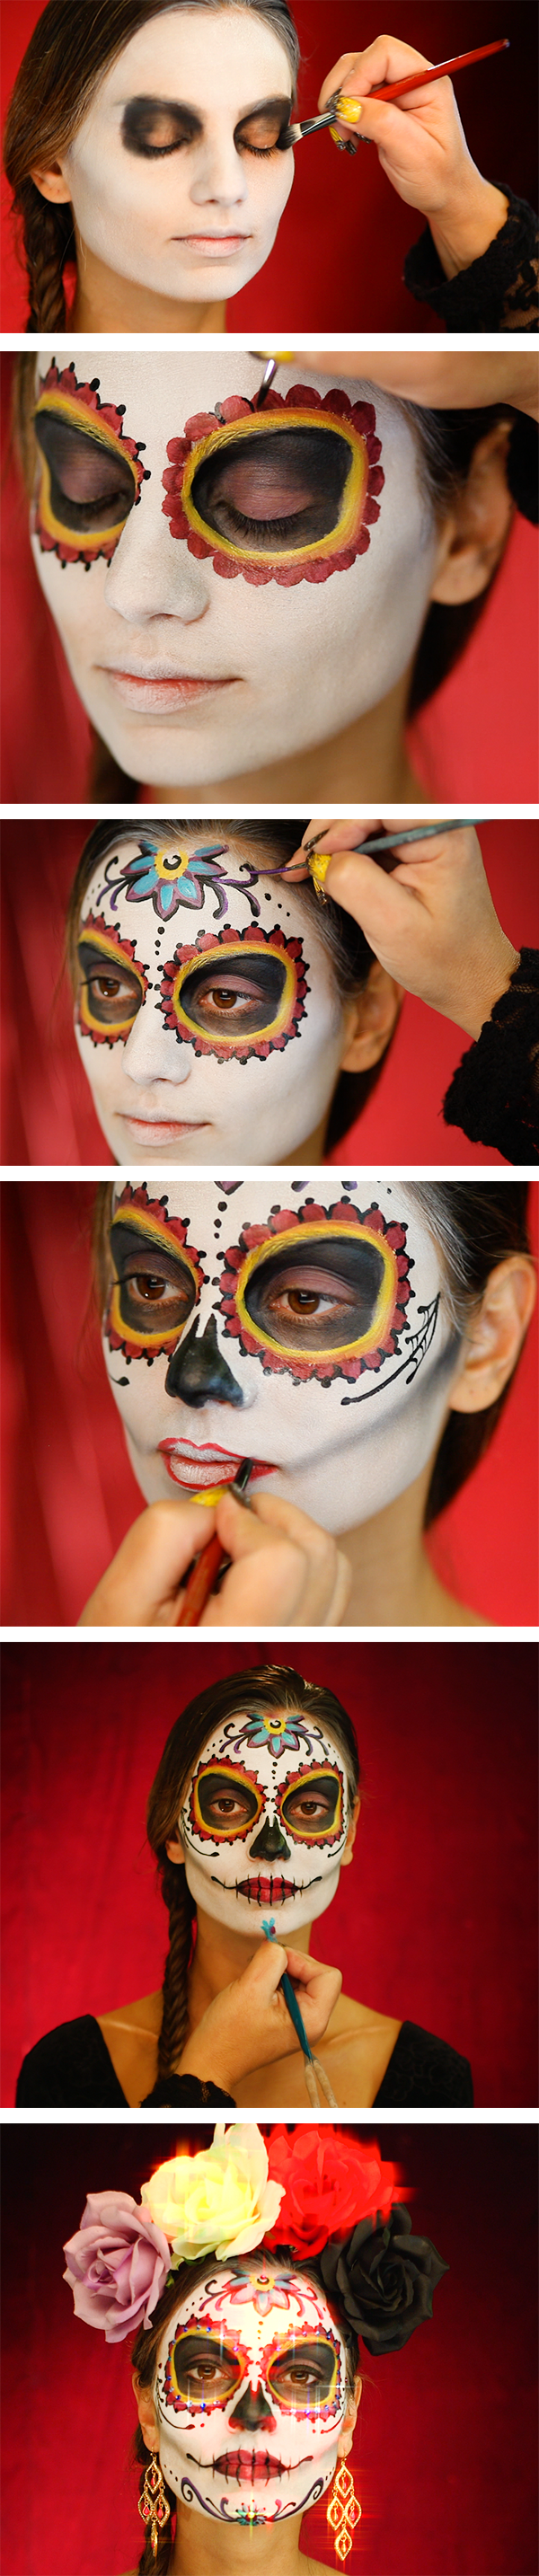 How do we celebrate the Day of the Dead? With a lot of spirit and ...